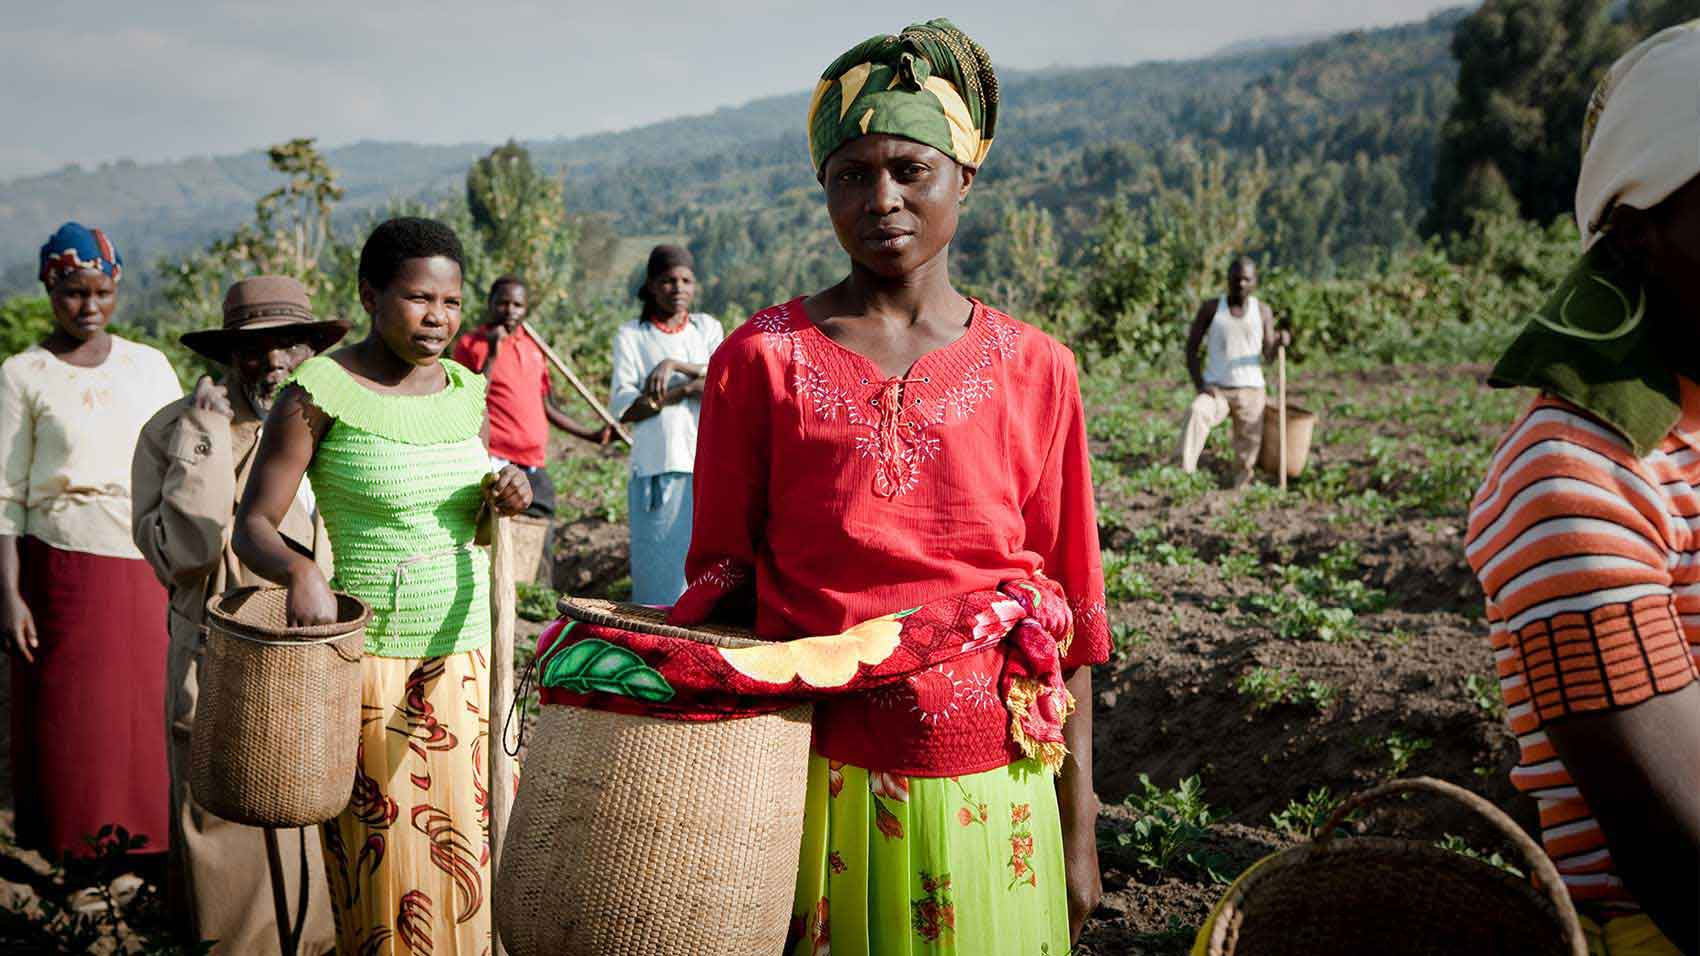 SC Johnson supports female entrepreneurs and sustainable farming in Rwanda